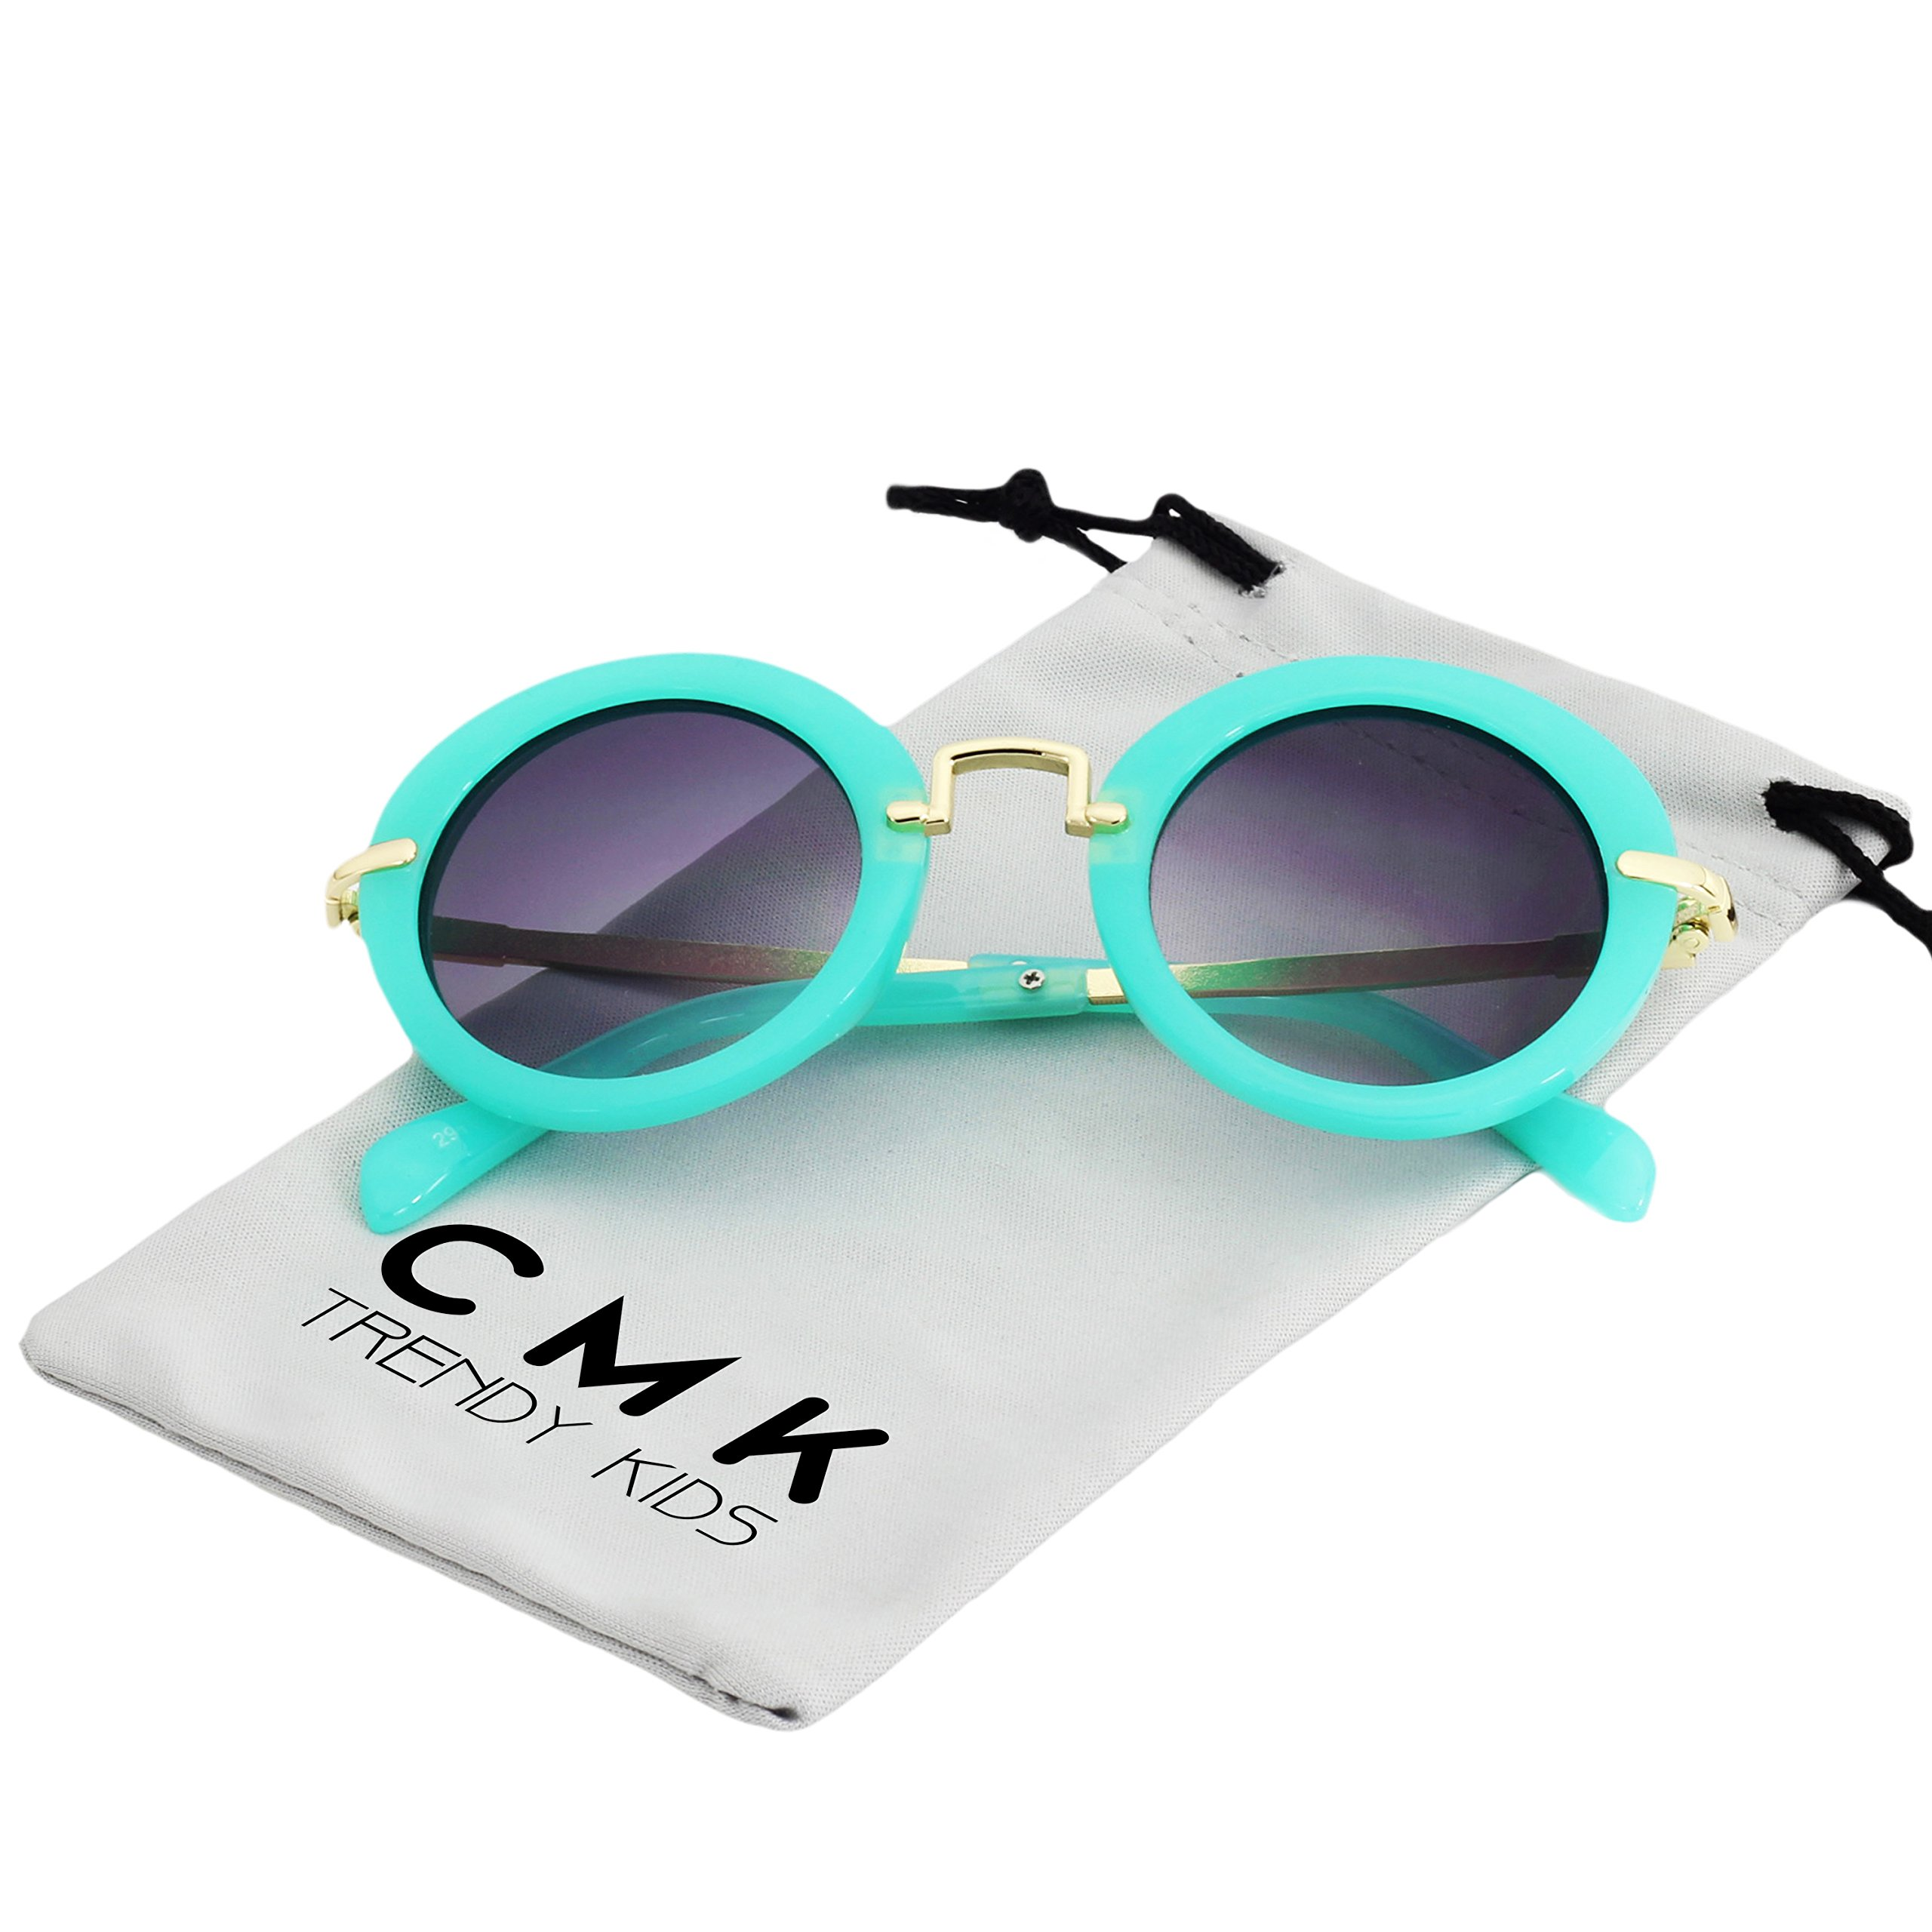 CMK Trendy Kids Classic Toddler Round Sunglasses for Little Girls and Boys Metal Legs (CMK180201_GR)